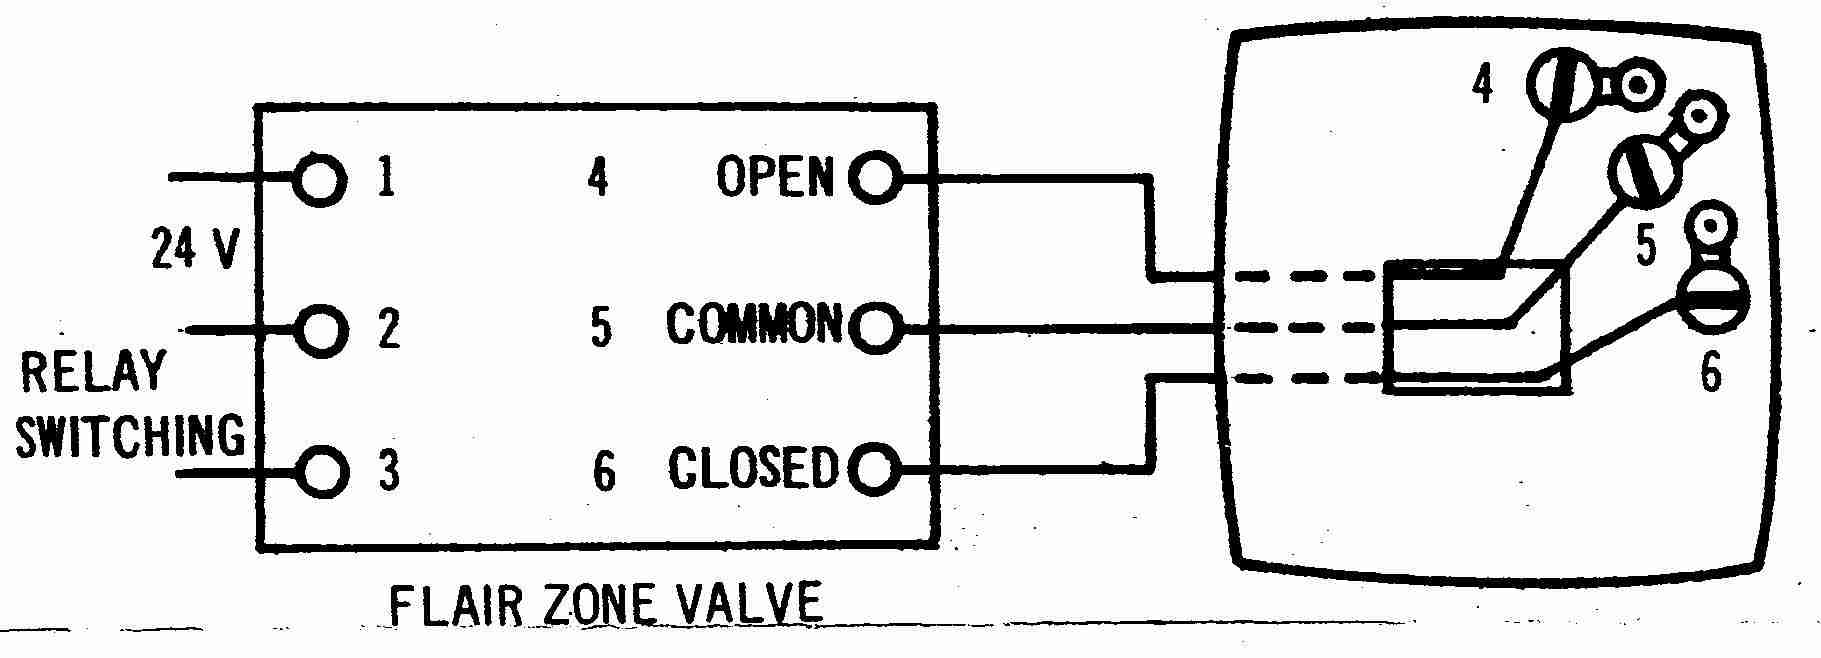 white wire thermostat wiring diagram trusted wiring diagram luxpro thermostat wiring color code room thermostat wiring diagrams for hvac systems 2wire thermostat wiring diagram flair 3 wire thermostat wiring